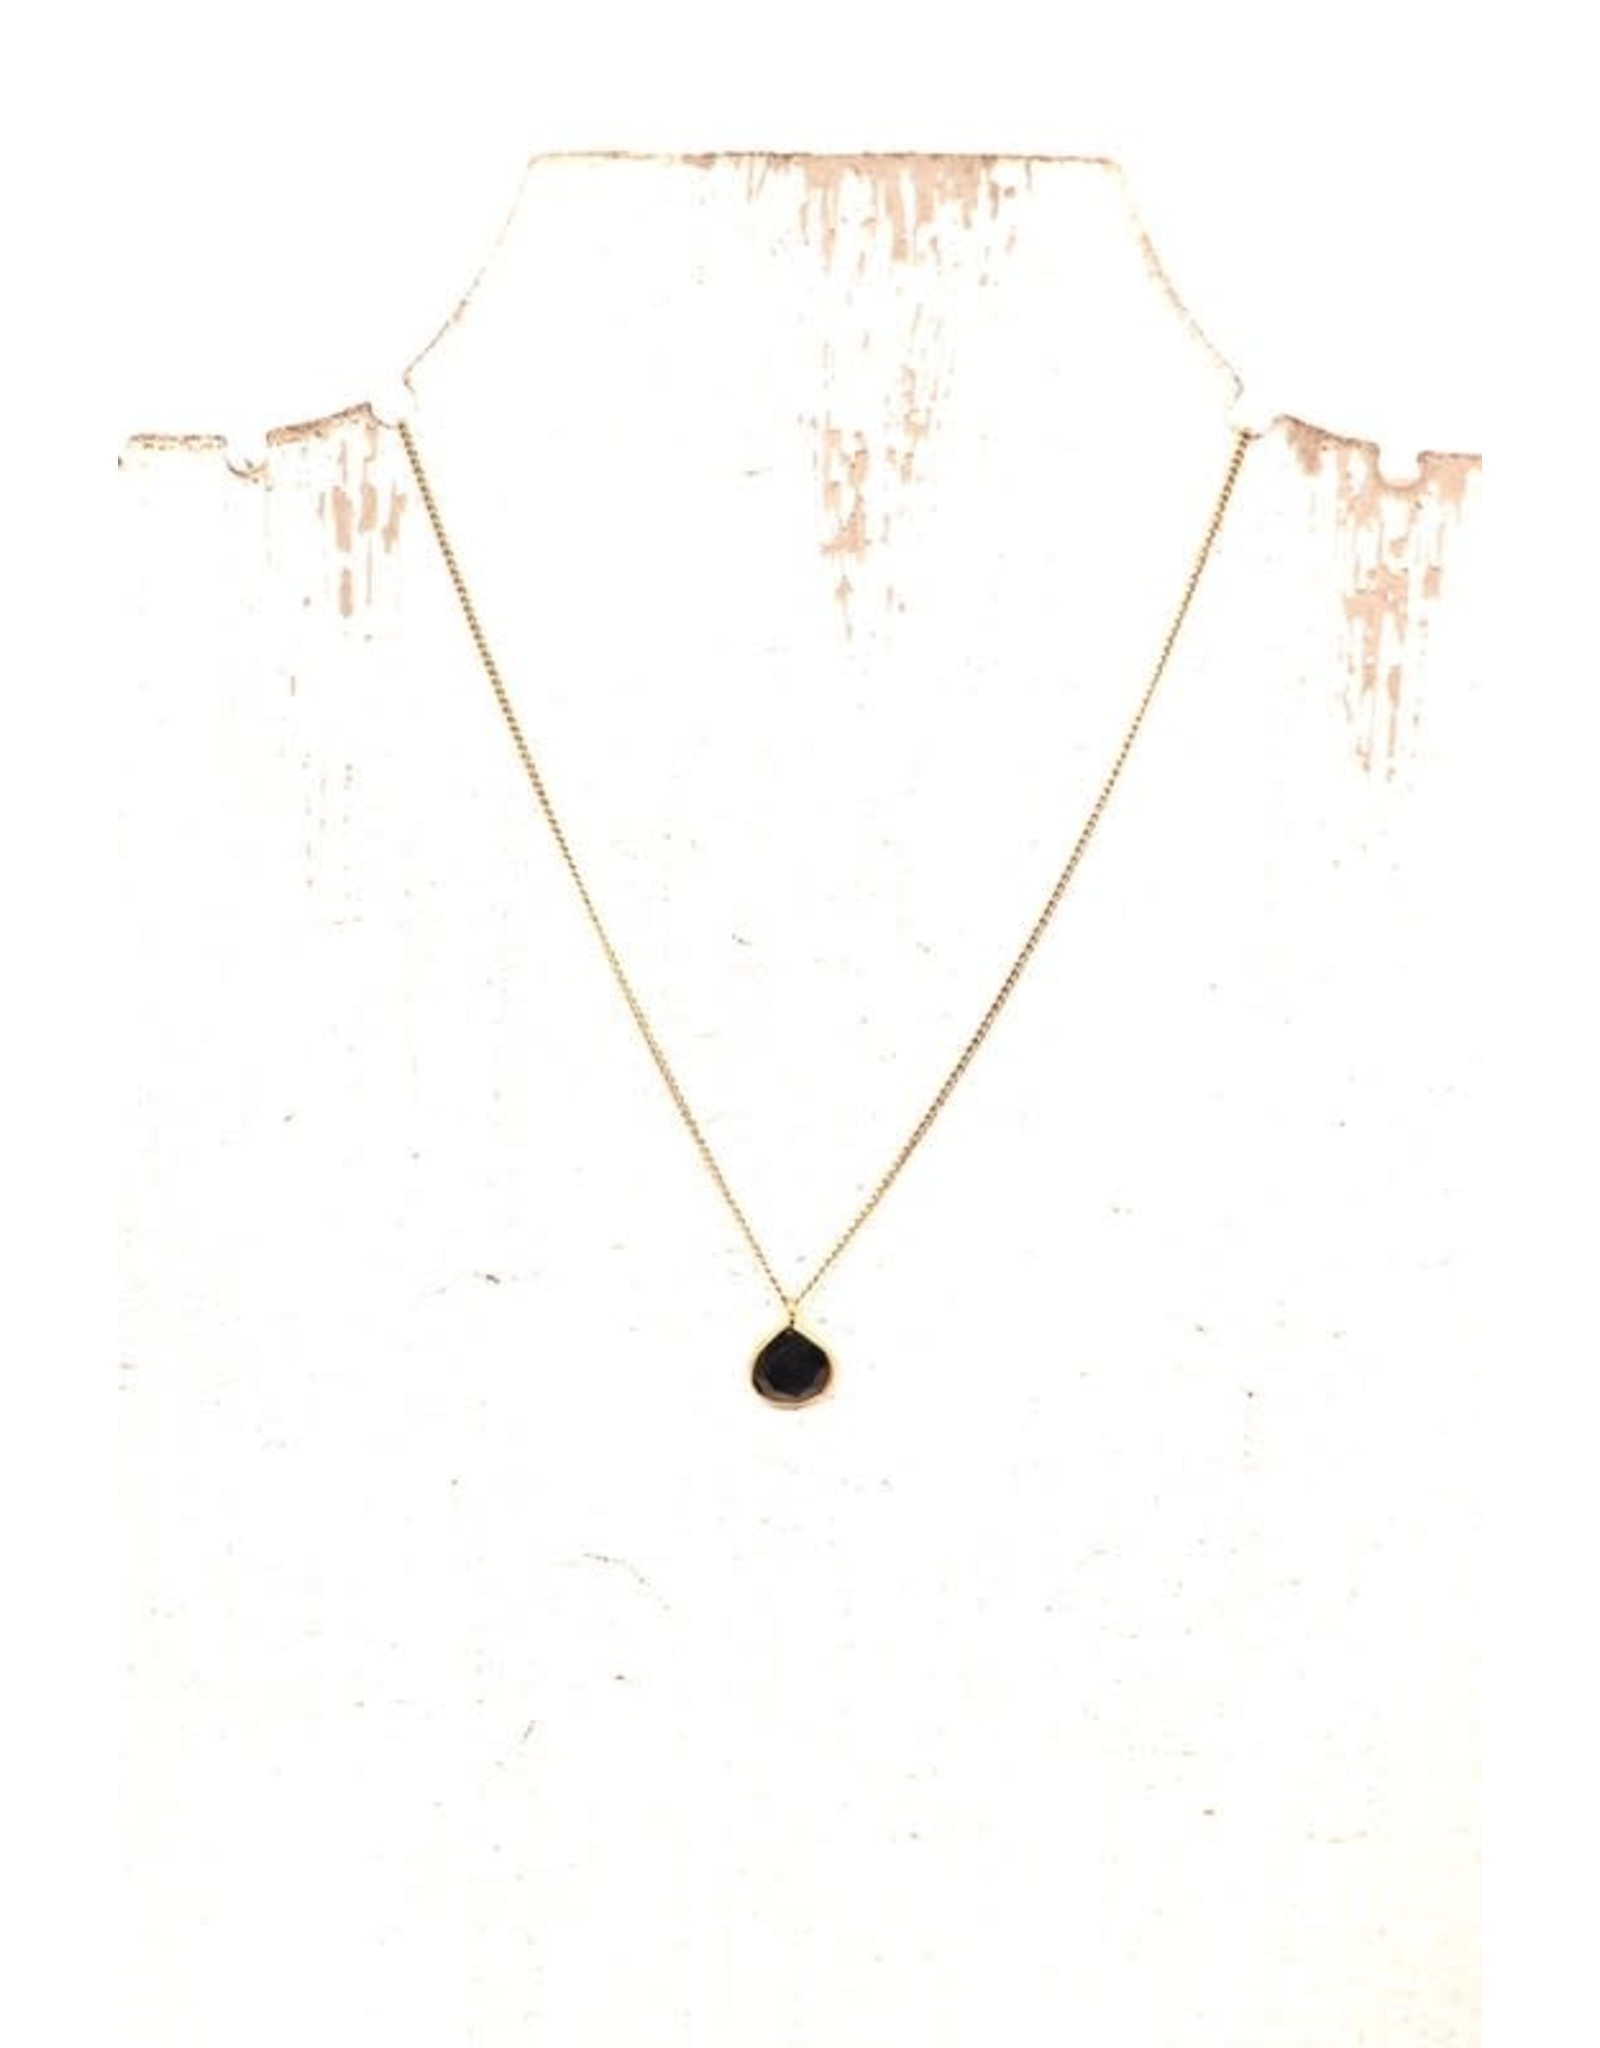 GOLD BLACK PRECIOUS STONE CHARM NECKLACE N-146